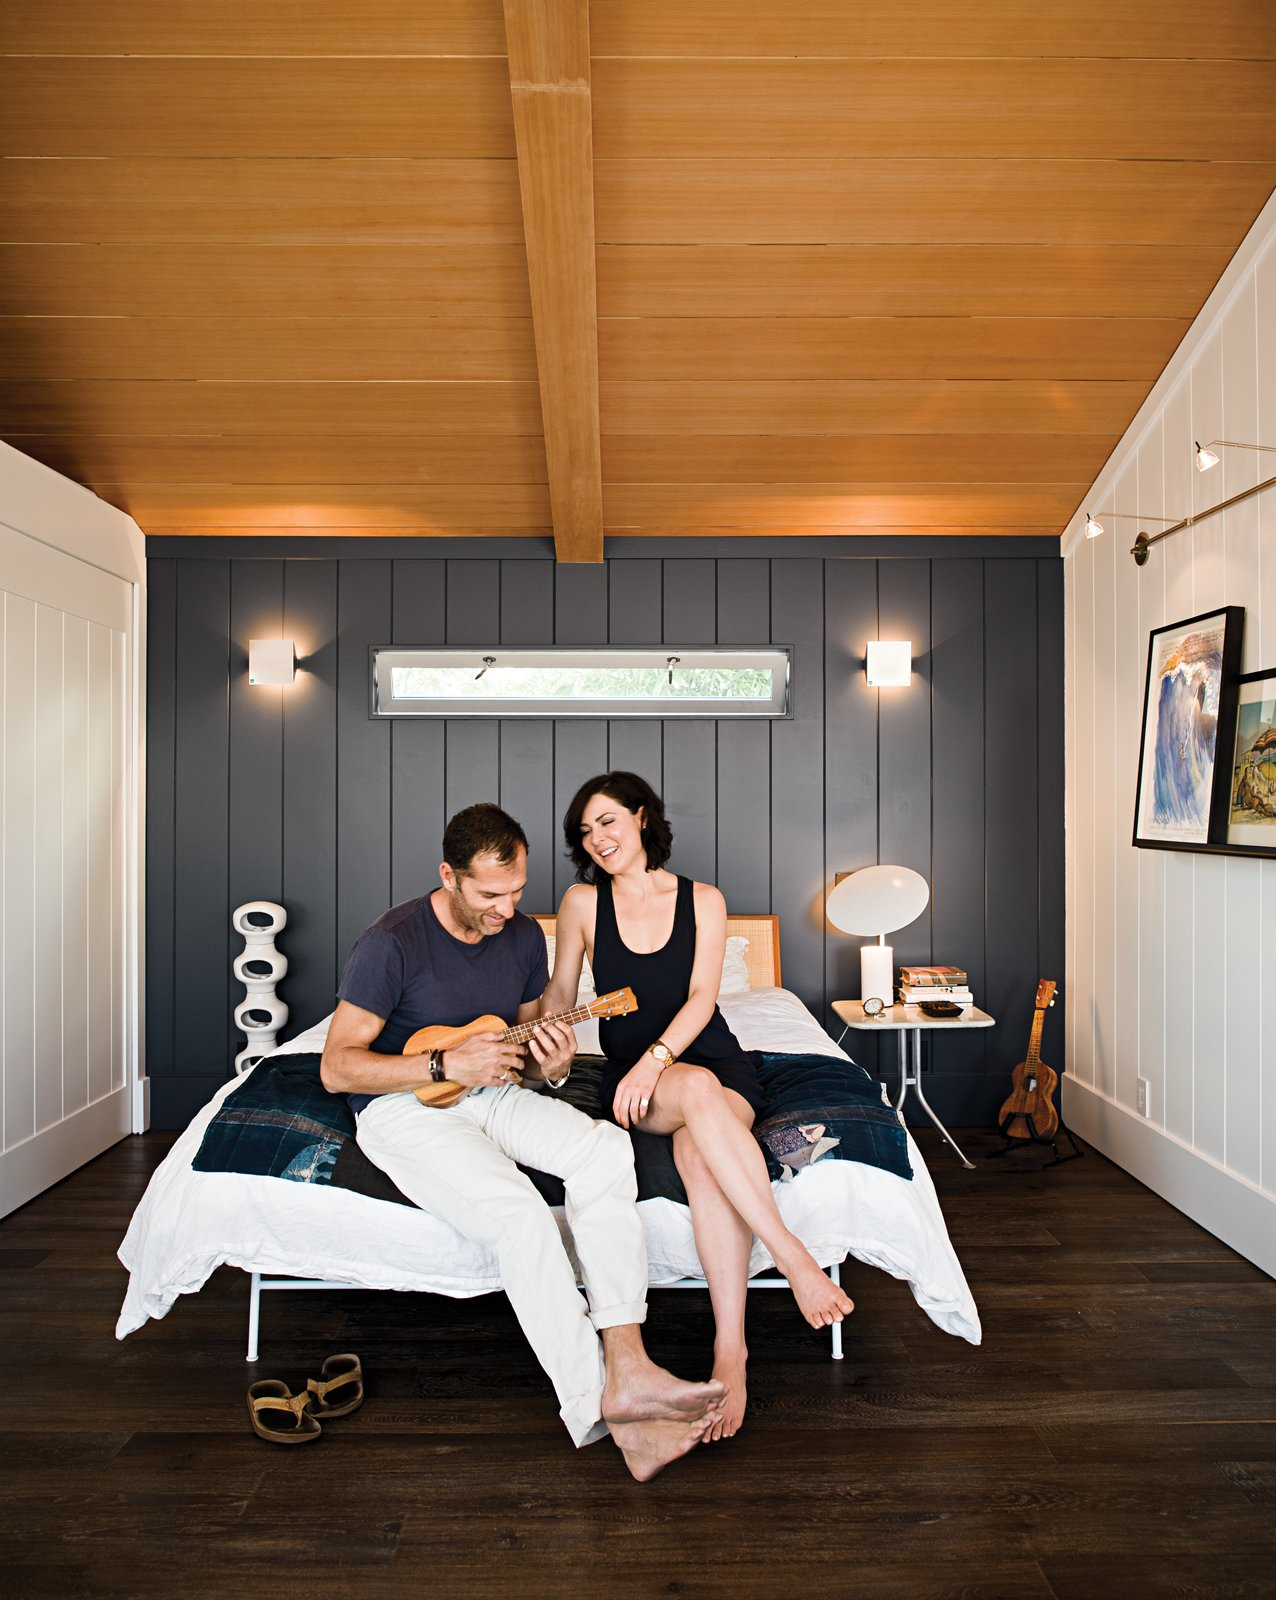 "Bedroom, Bed, and Dark Hardwood Floor ""There's a soulfulness in this small house that's impossible to replicate in something completely new. The sweetness truly lingers,"" says architect Michael Lee.   Bedrooms by Dwell from Less is More in this Manhattan Beach Bungalow"